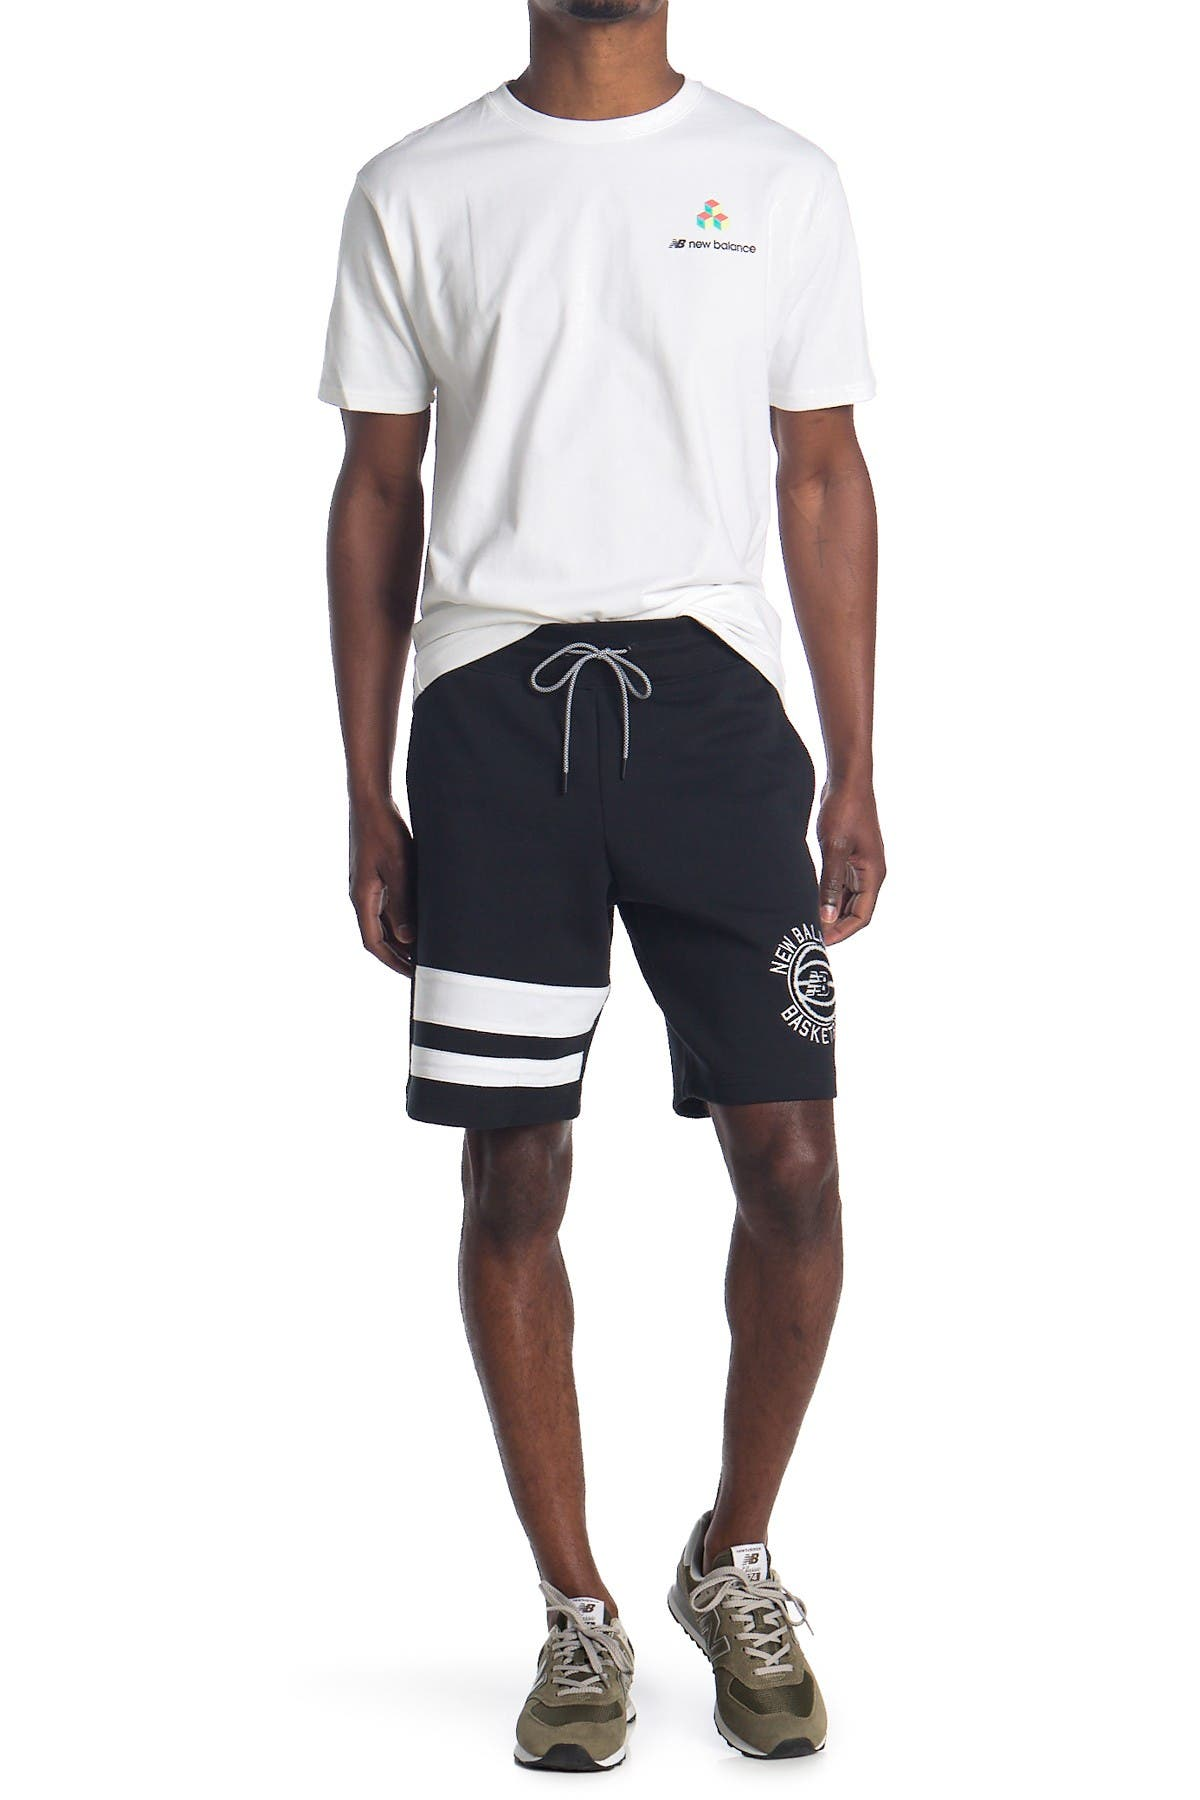 Image of New Balance Basketball First Light Shorts